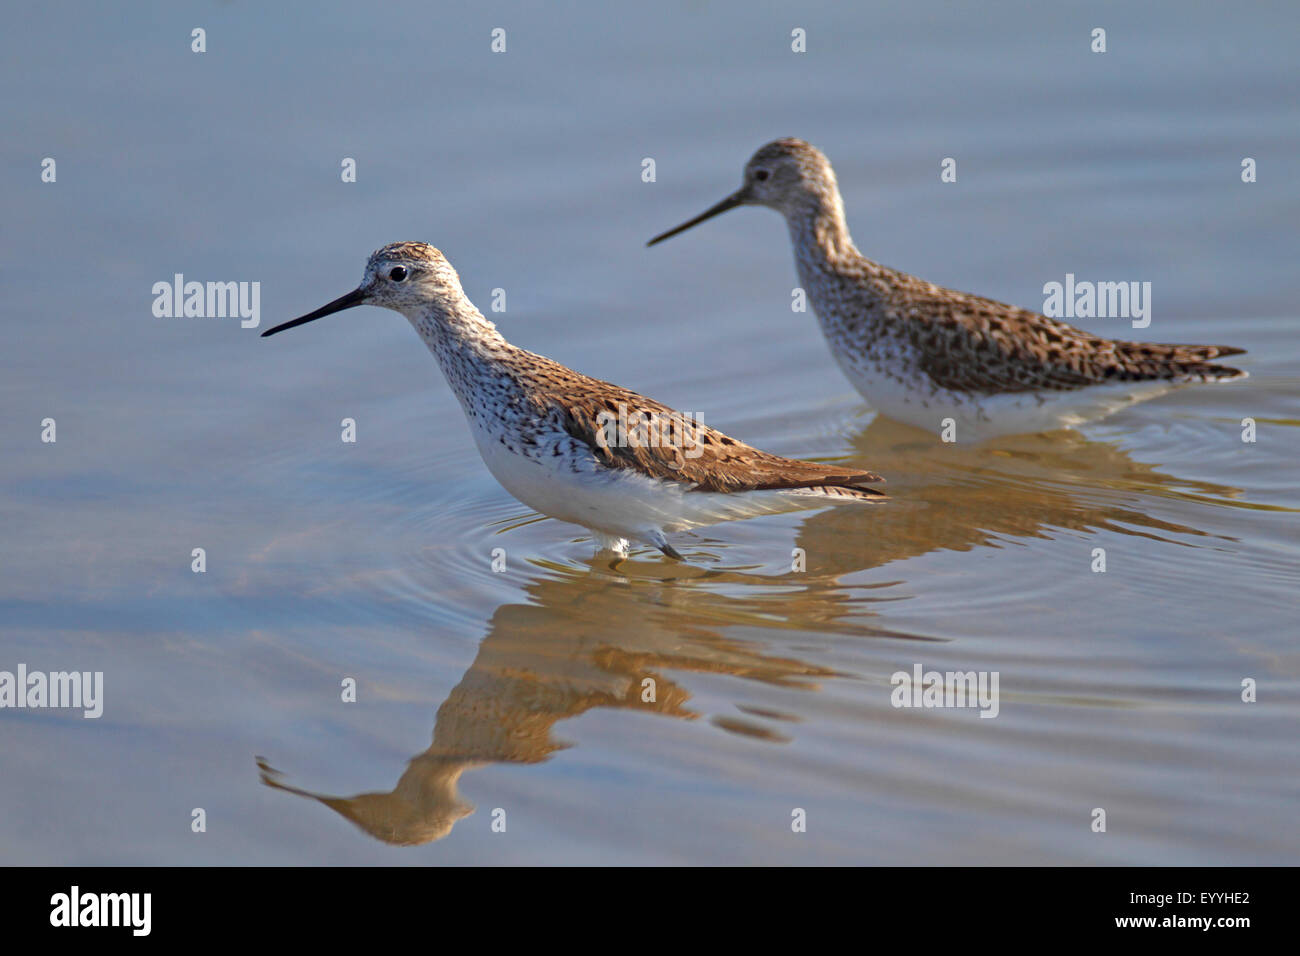 marsh sandpiper (Tringa stagnatilis), two birds wading in shallow water, Greece, Lesbos - Stock Image